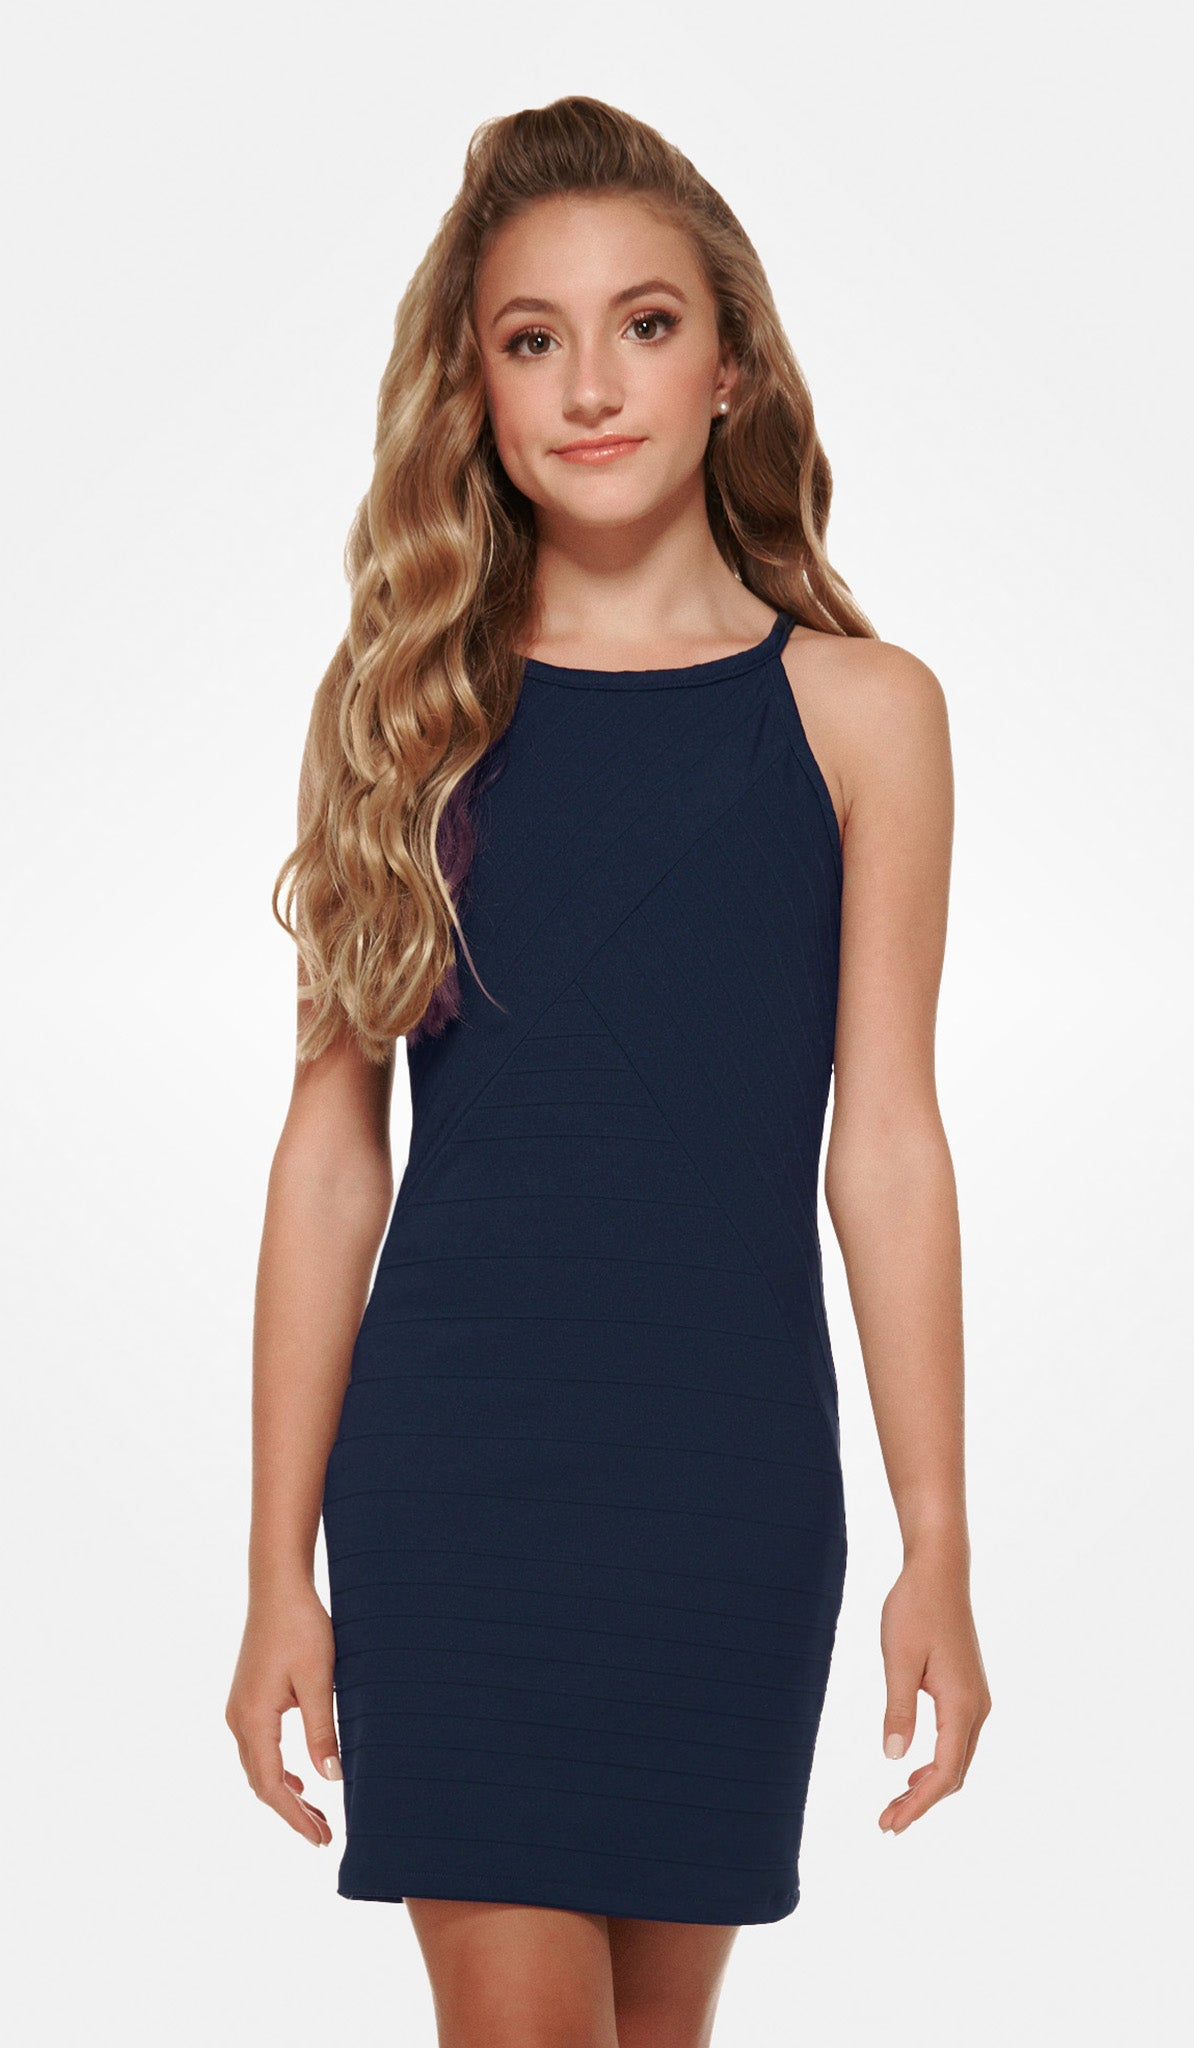 THE MANDY DRESS - Sallymiller.com - [variant title] - | Event & Party Dresses for Tween Girls & Juniors | Weddings Dresses, Bat Mitzvah Dresses, Sweet Sixteen Dresses, Graduation Dresses, Birthday Party Dresses, Bar Mitzvah Dresses, Cotillion Dresses